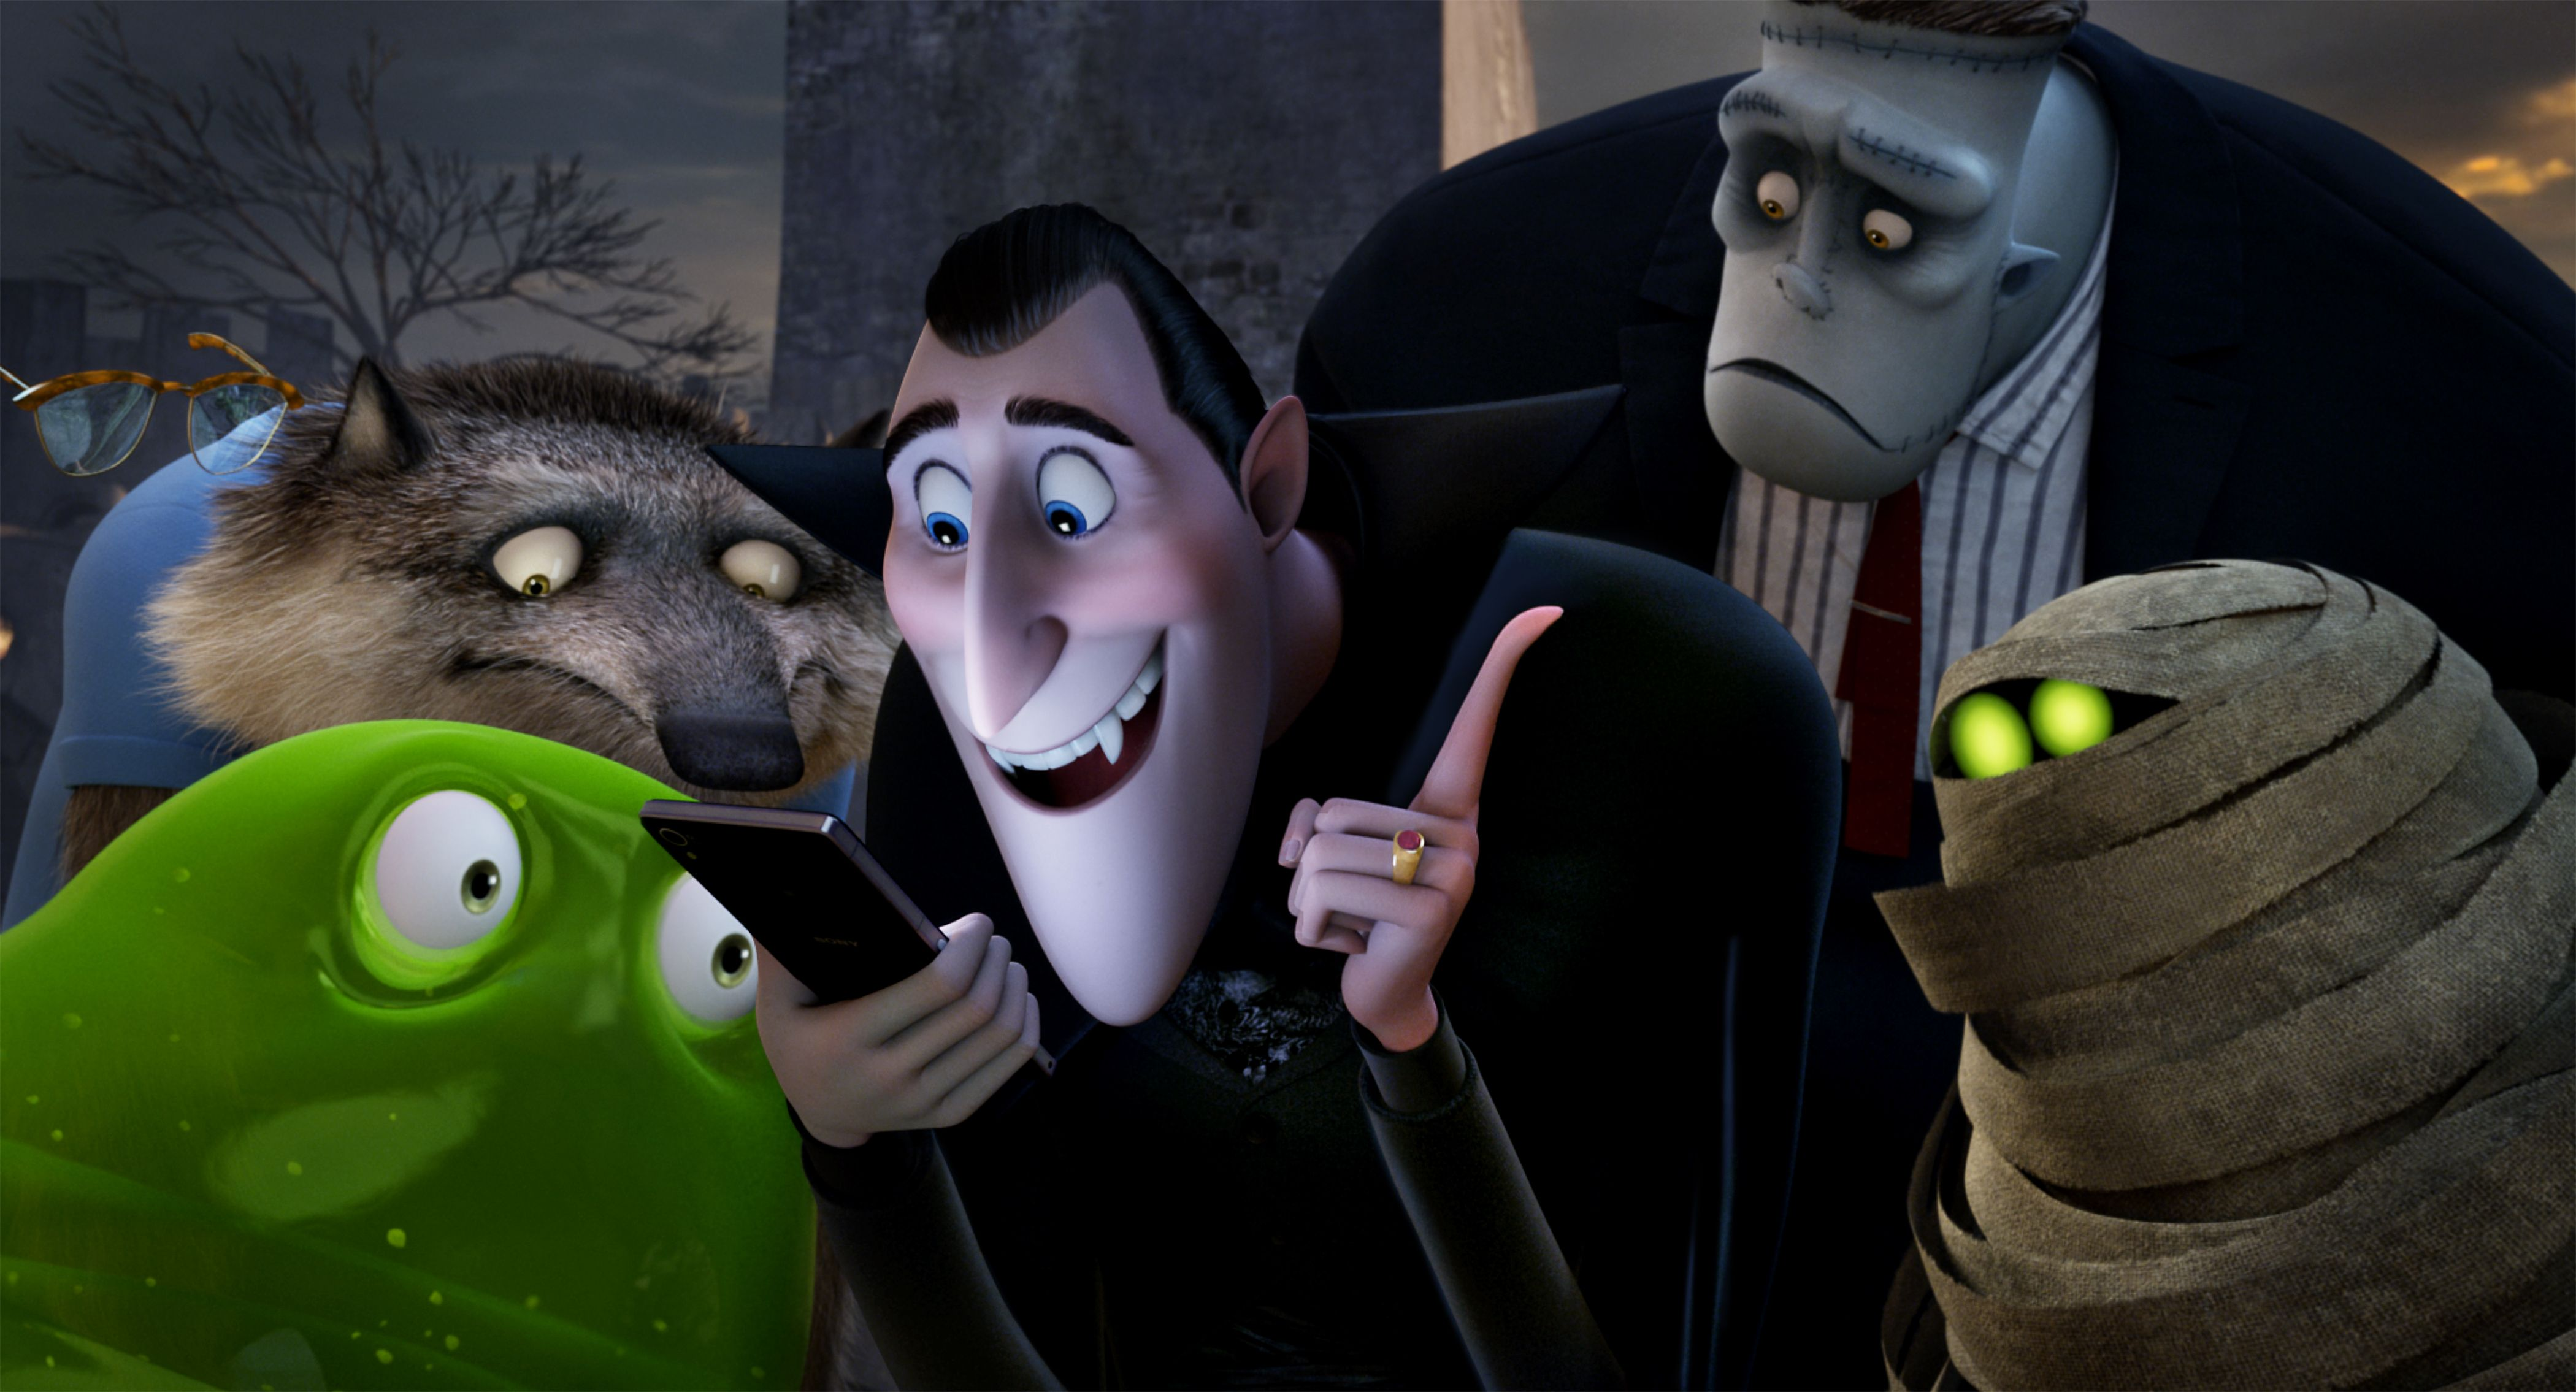 Hotel Transylvania 2: 20 Things to Know About the Sequel ... Hotel Transylvania